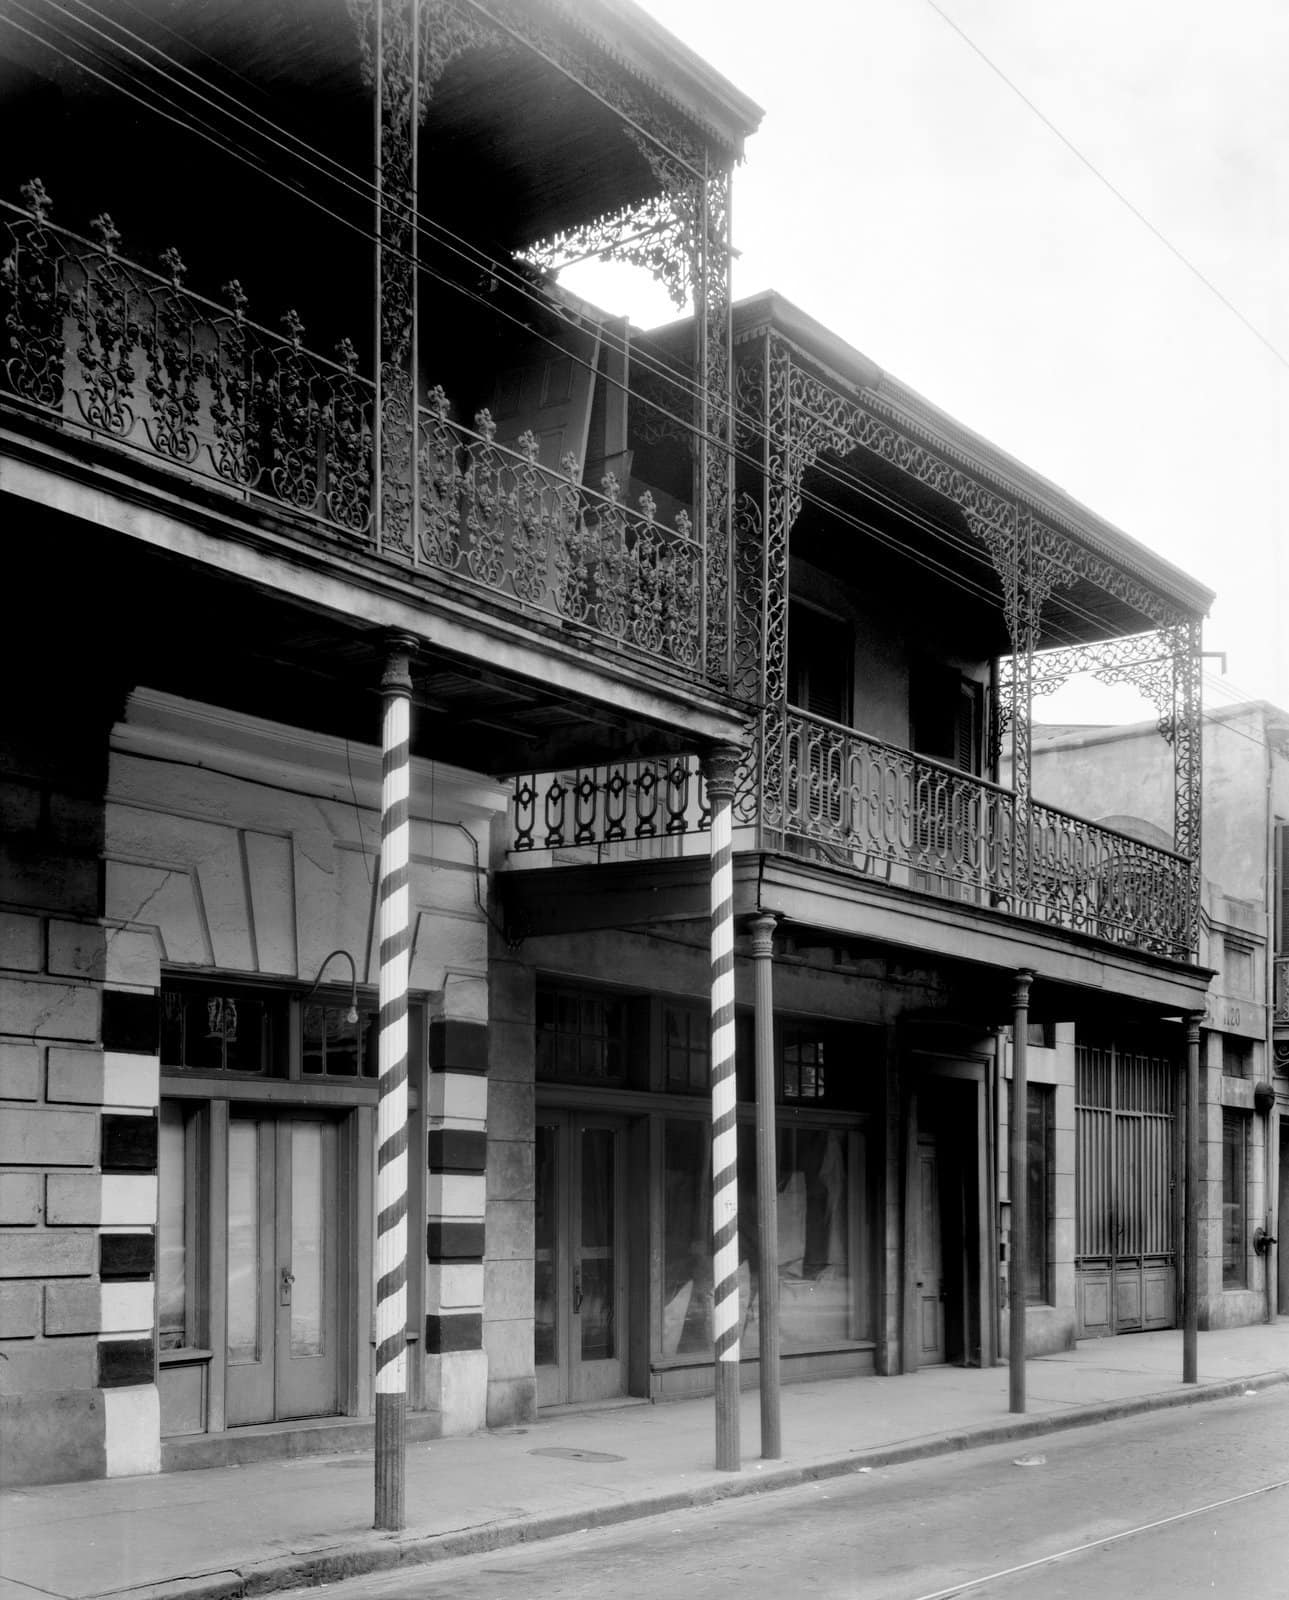 Old Southern wrought-iron balcony at Gallier House, 1132-1134 Royal St., New Orleans, Louisiana (1930)